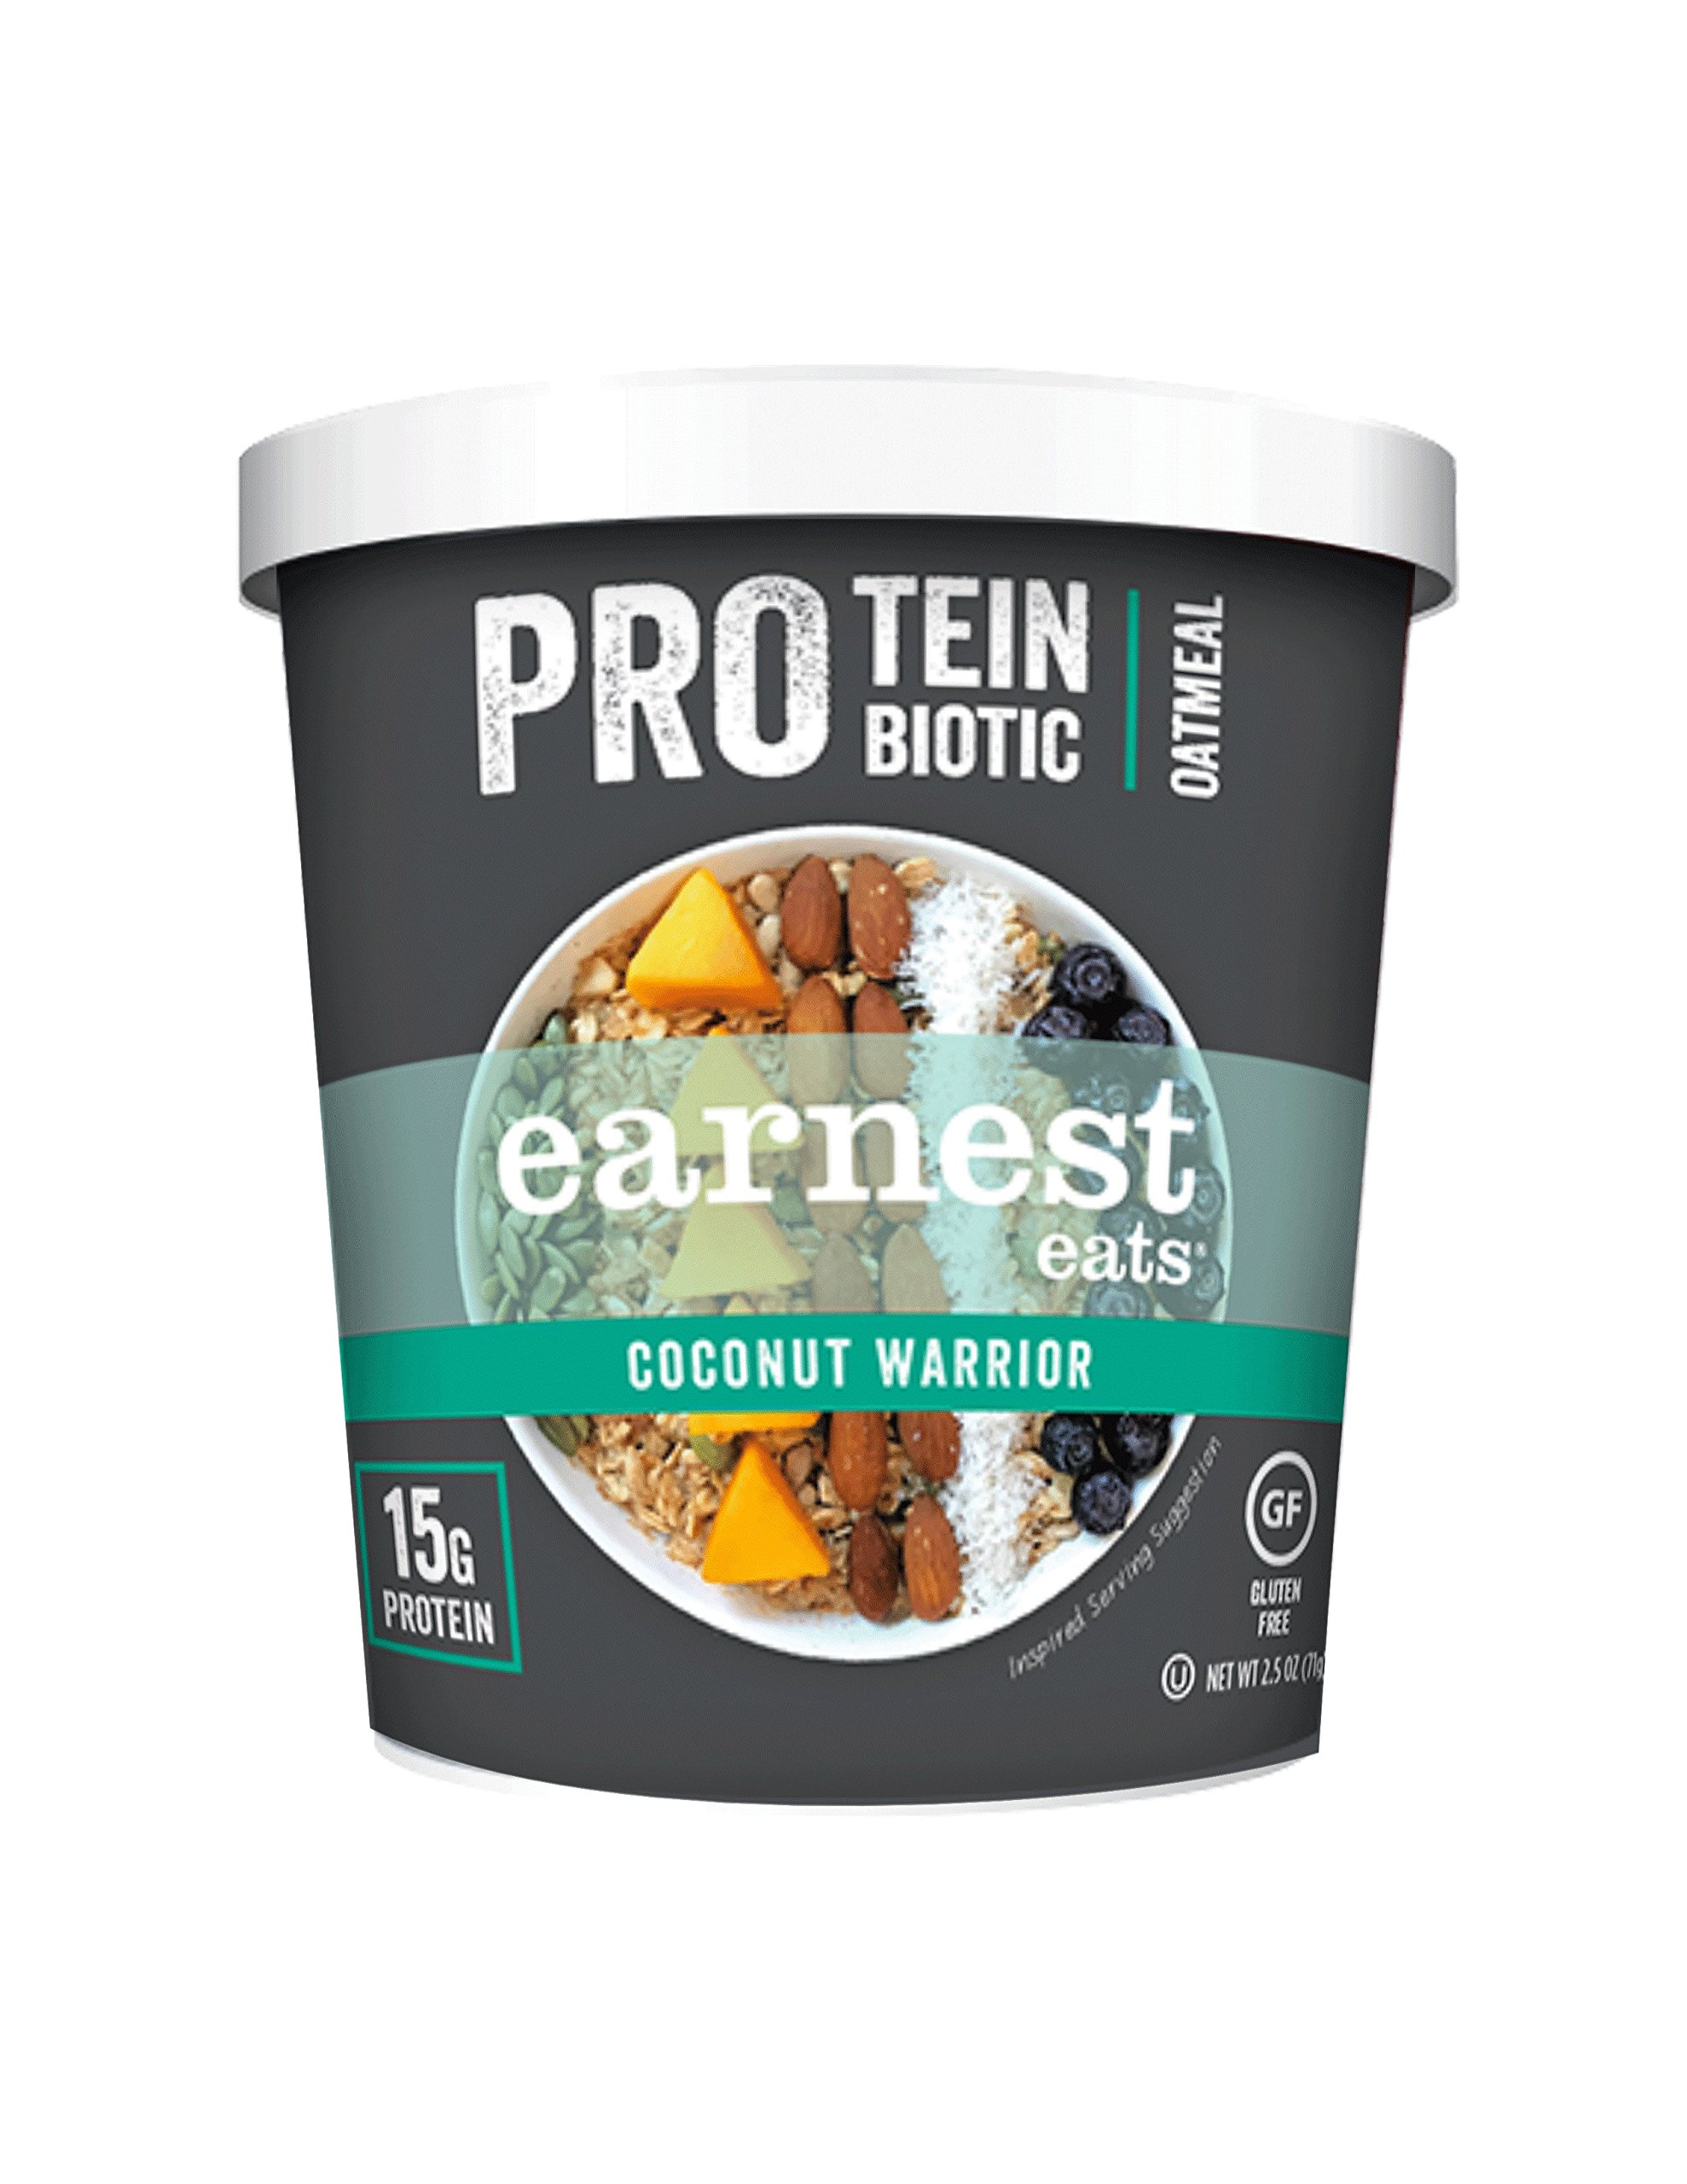 Earnest Eats Pro Protein and Probiotic Oatmeal, Coconut Warrior, 12 Count